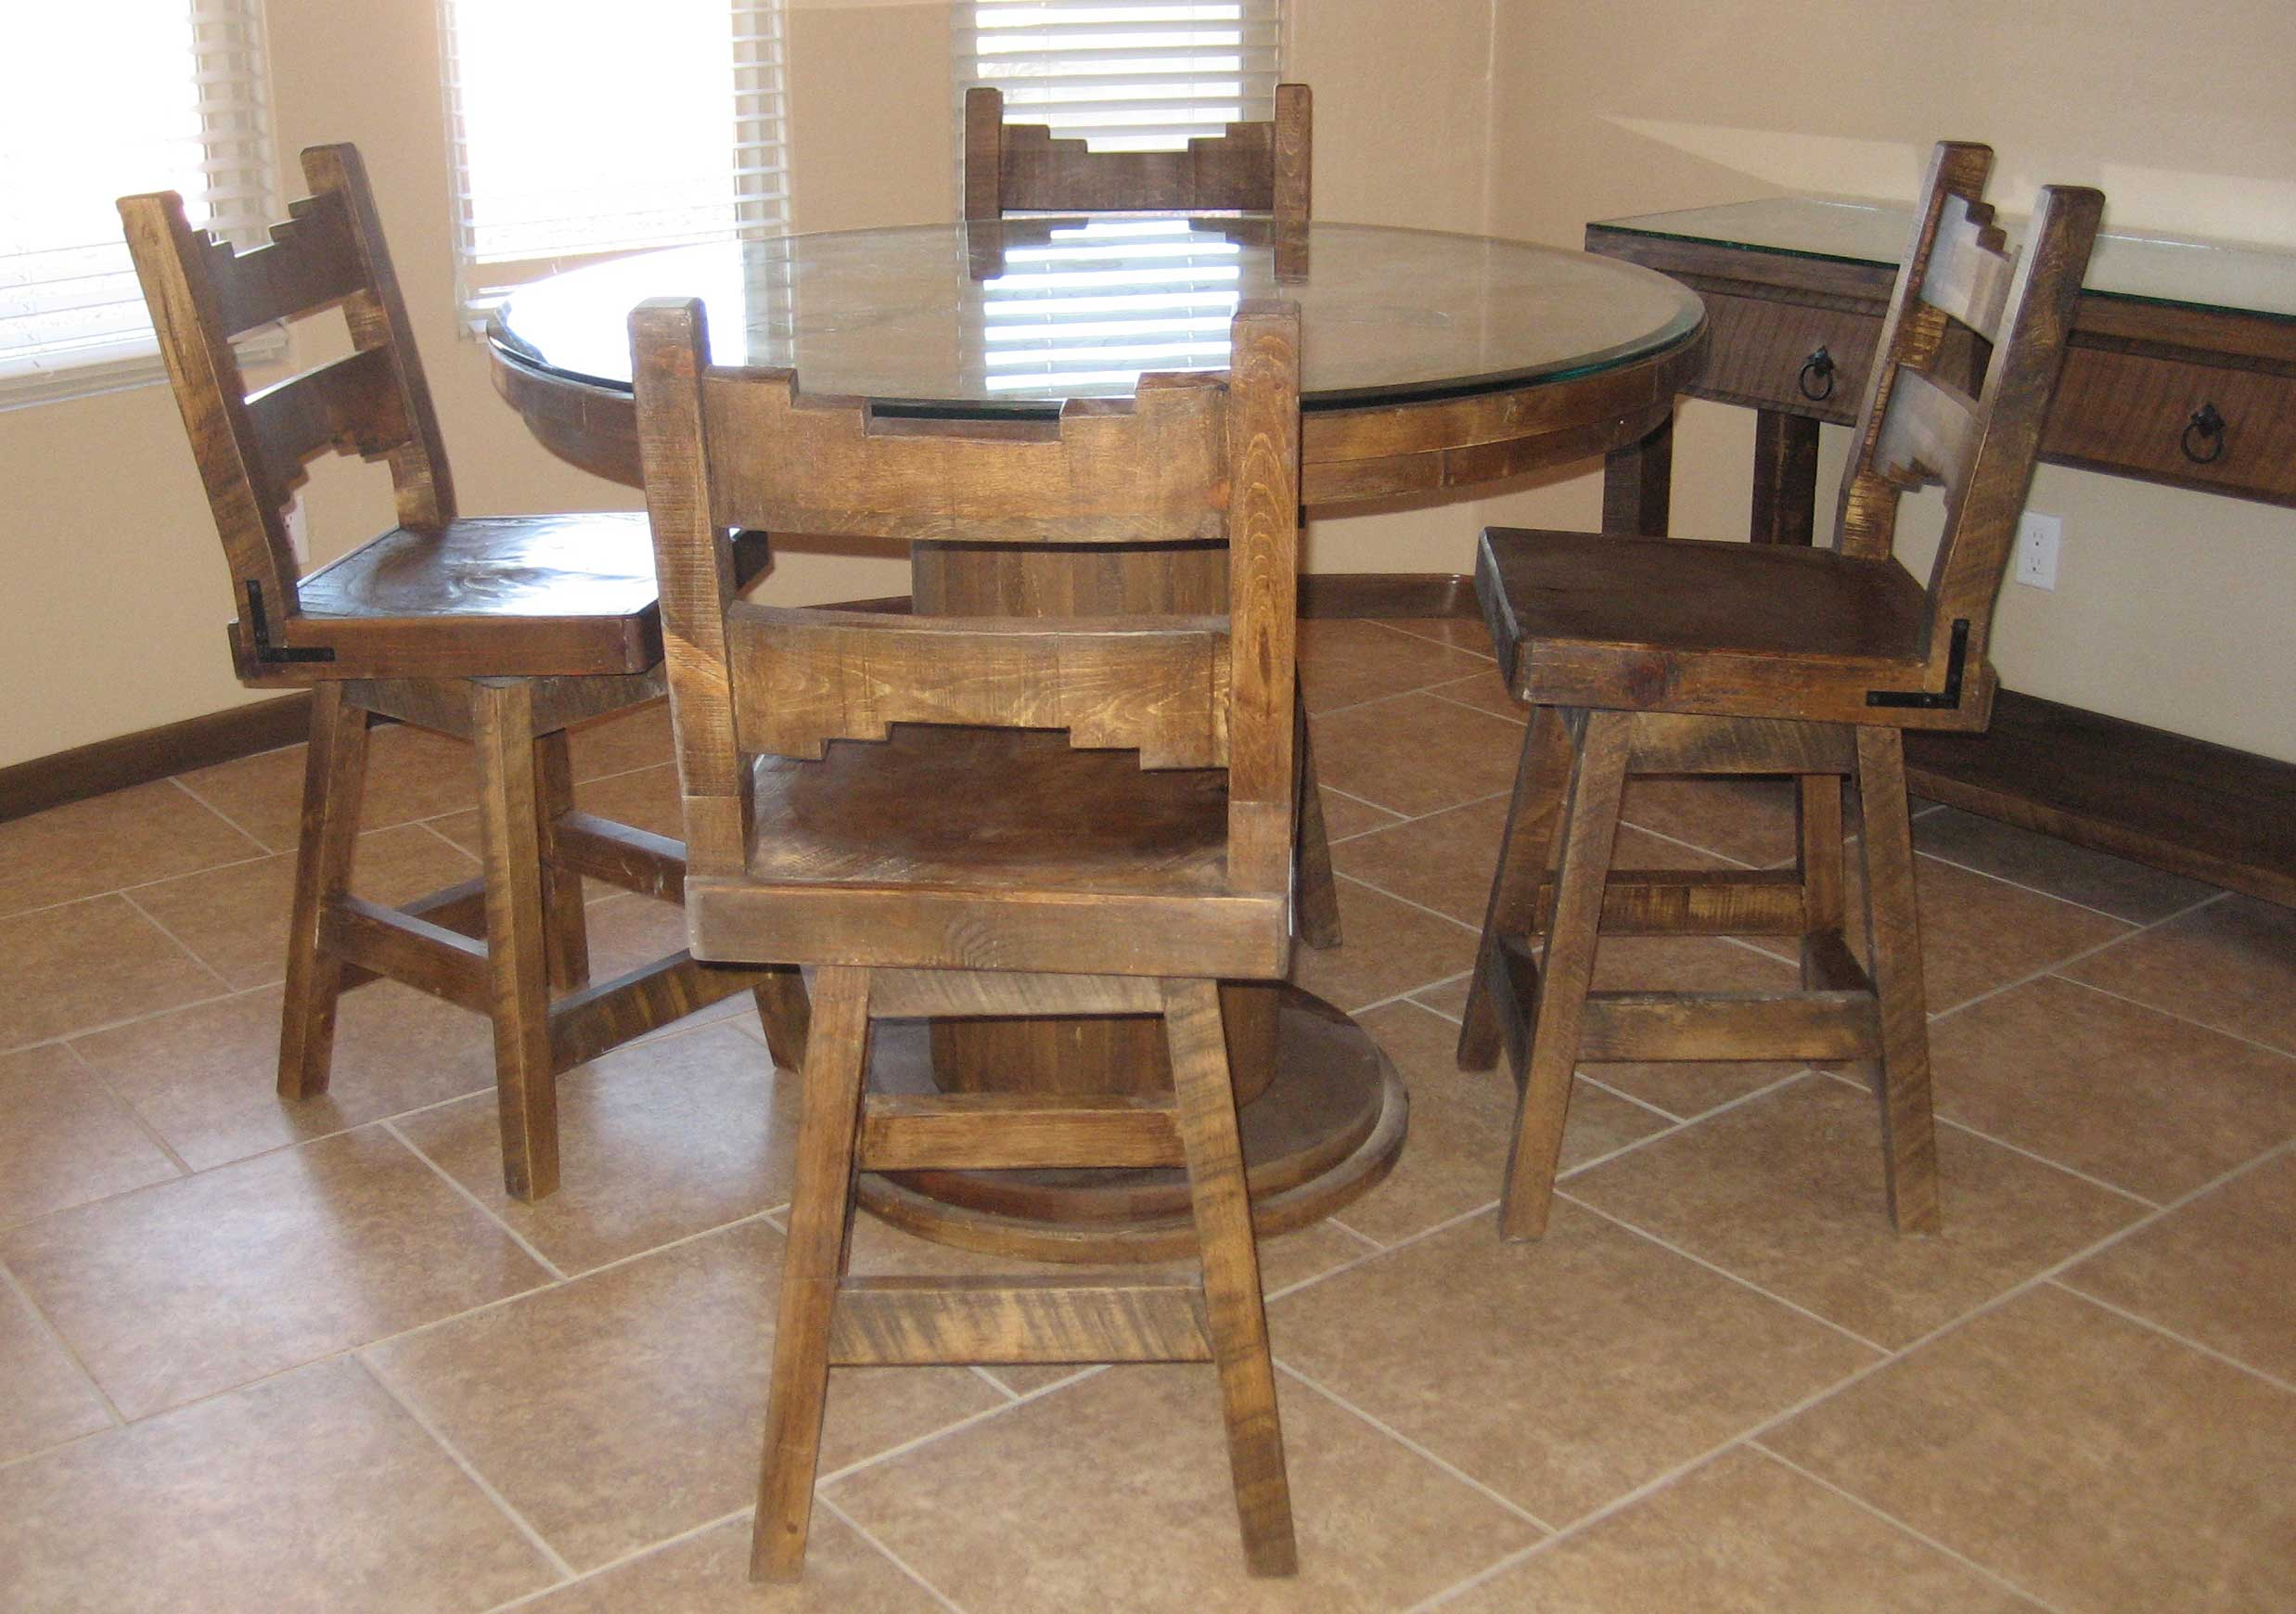 Glass Dining Table Set 4 Chairs Small Kitchen Dinette Sets Small Round Kitchen Table And Chairs